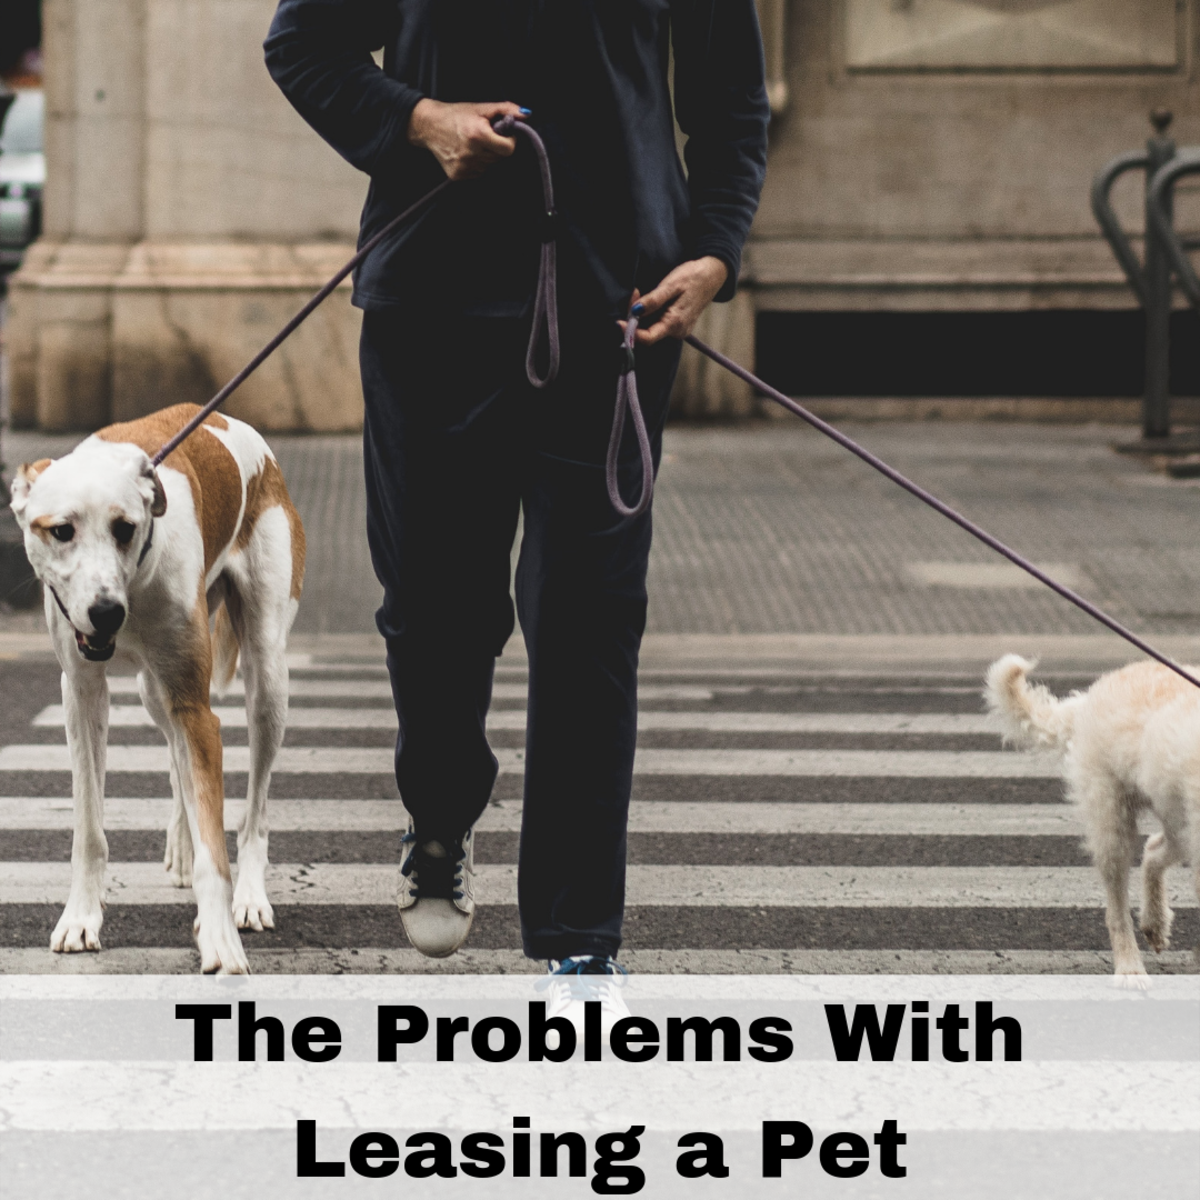 Be wary about pet leasing, you have to be careful about who you want to trust as a leaser or a lessee.